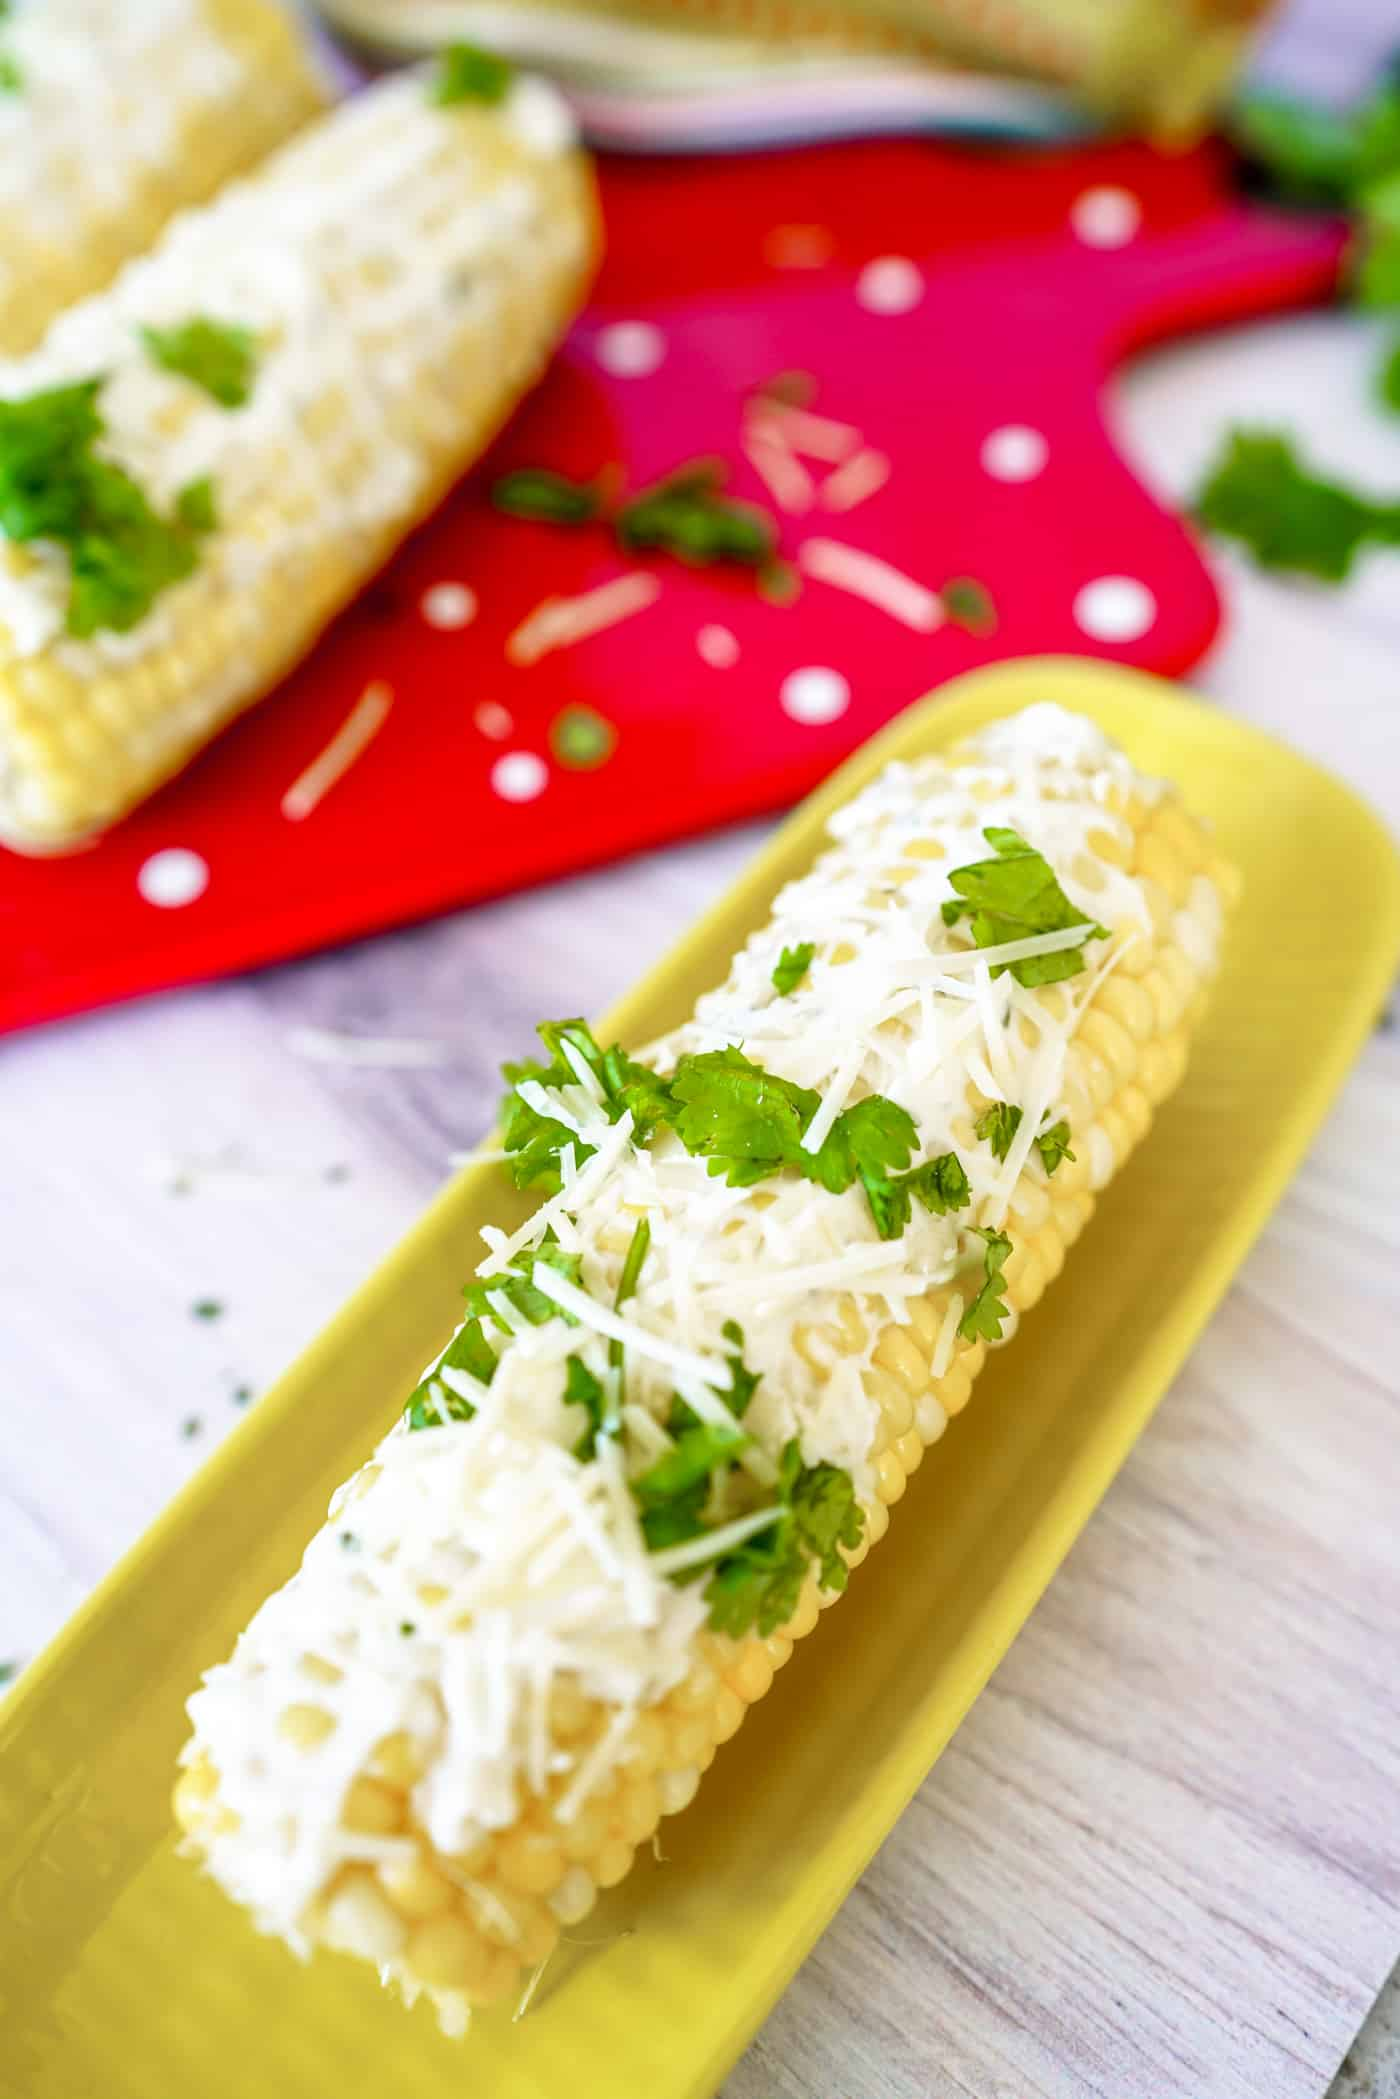 Summer is here and we are ready for Instant Pot Corn on the Cob!  In just 2 minutes, have this delicious side ready to serve with your favorite Summer meals!  Instant Pot Corn on the Cob is a quick and easy dinner recipe you need!